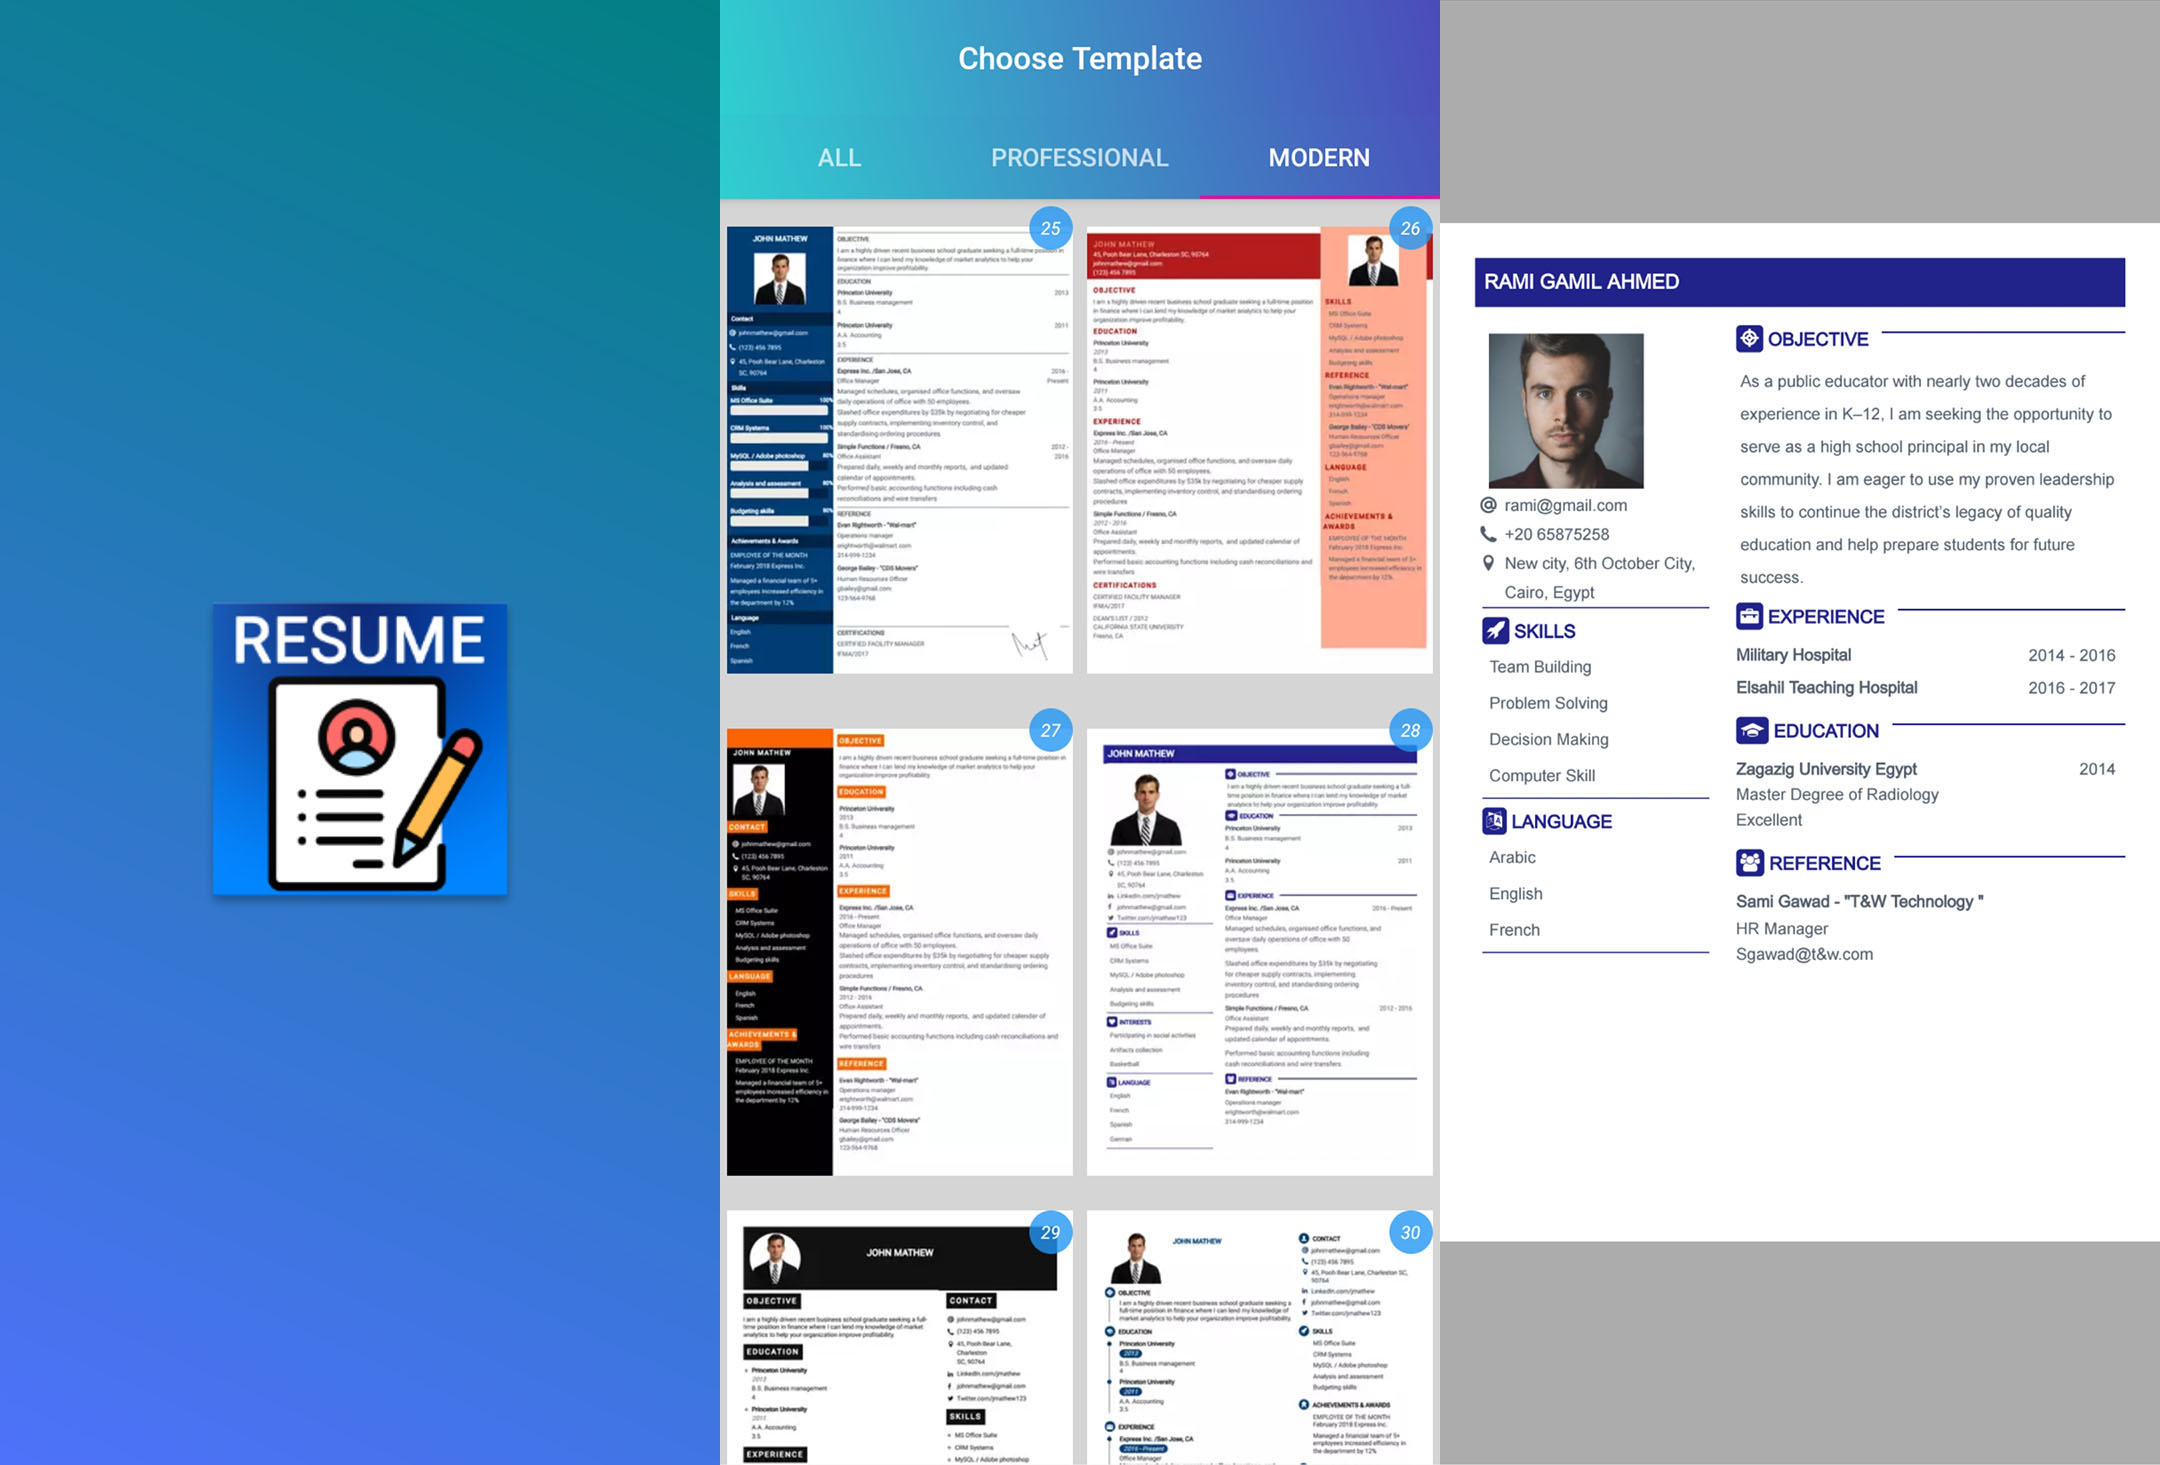 download resume builder app free cv maker cv templates 2020 latest version for android free